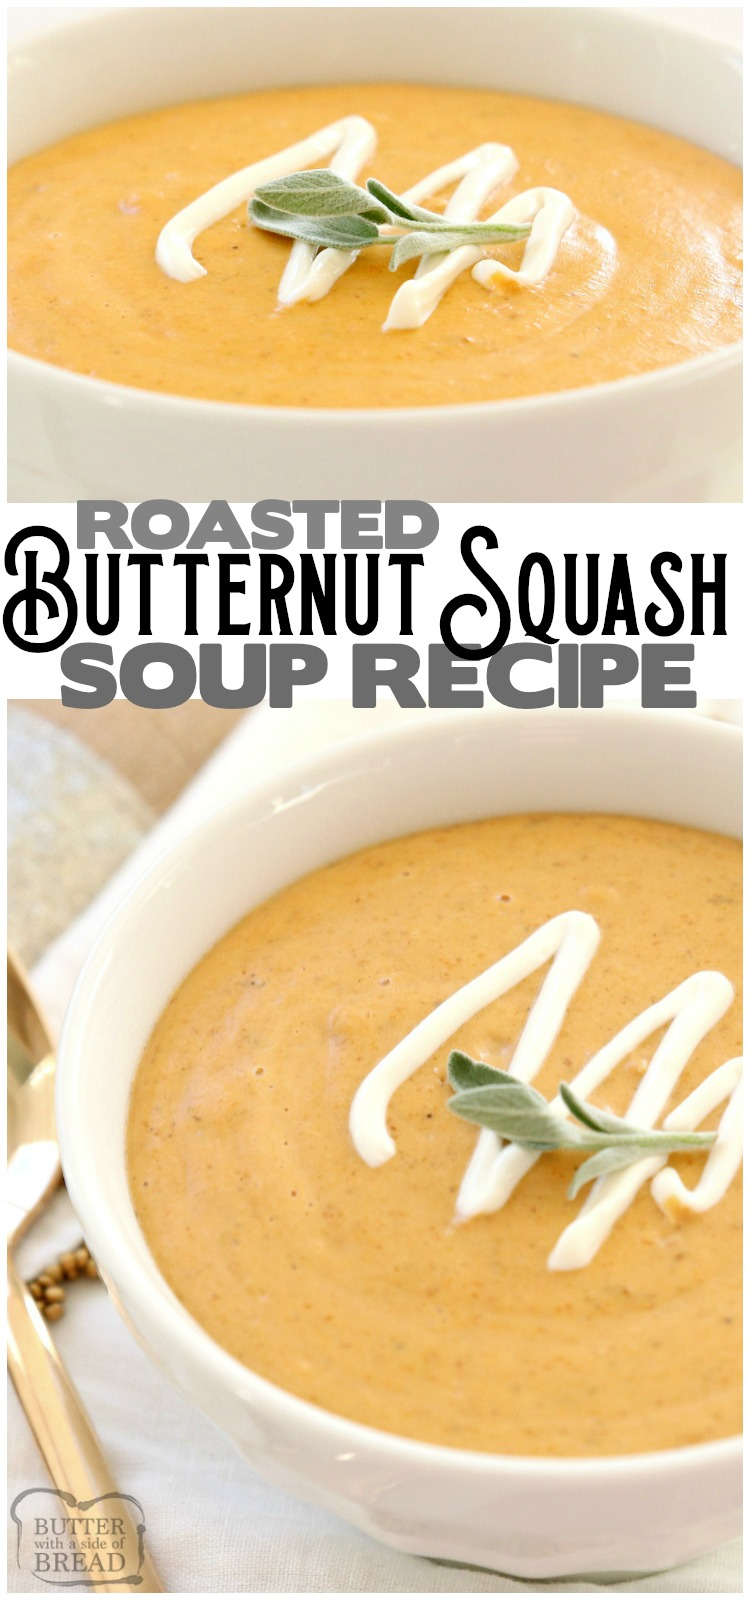 Roasted Butternut Squash Soup made easy in 30 minutes! Creamy, flavorful and healthy butternut squash soup recipe perfect for healthy dinners and lunches. #butternut #squash #soup #recipe #food #healthy #dinner #meatless #lowcal from BUTTER WITH A SIDE OF BREAD